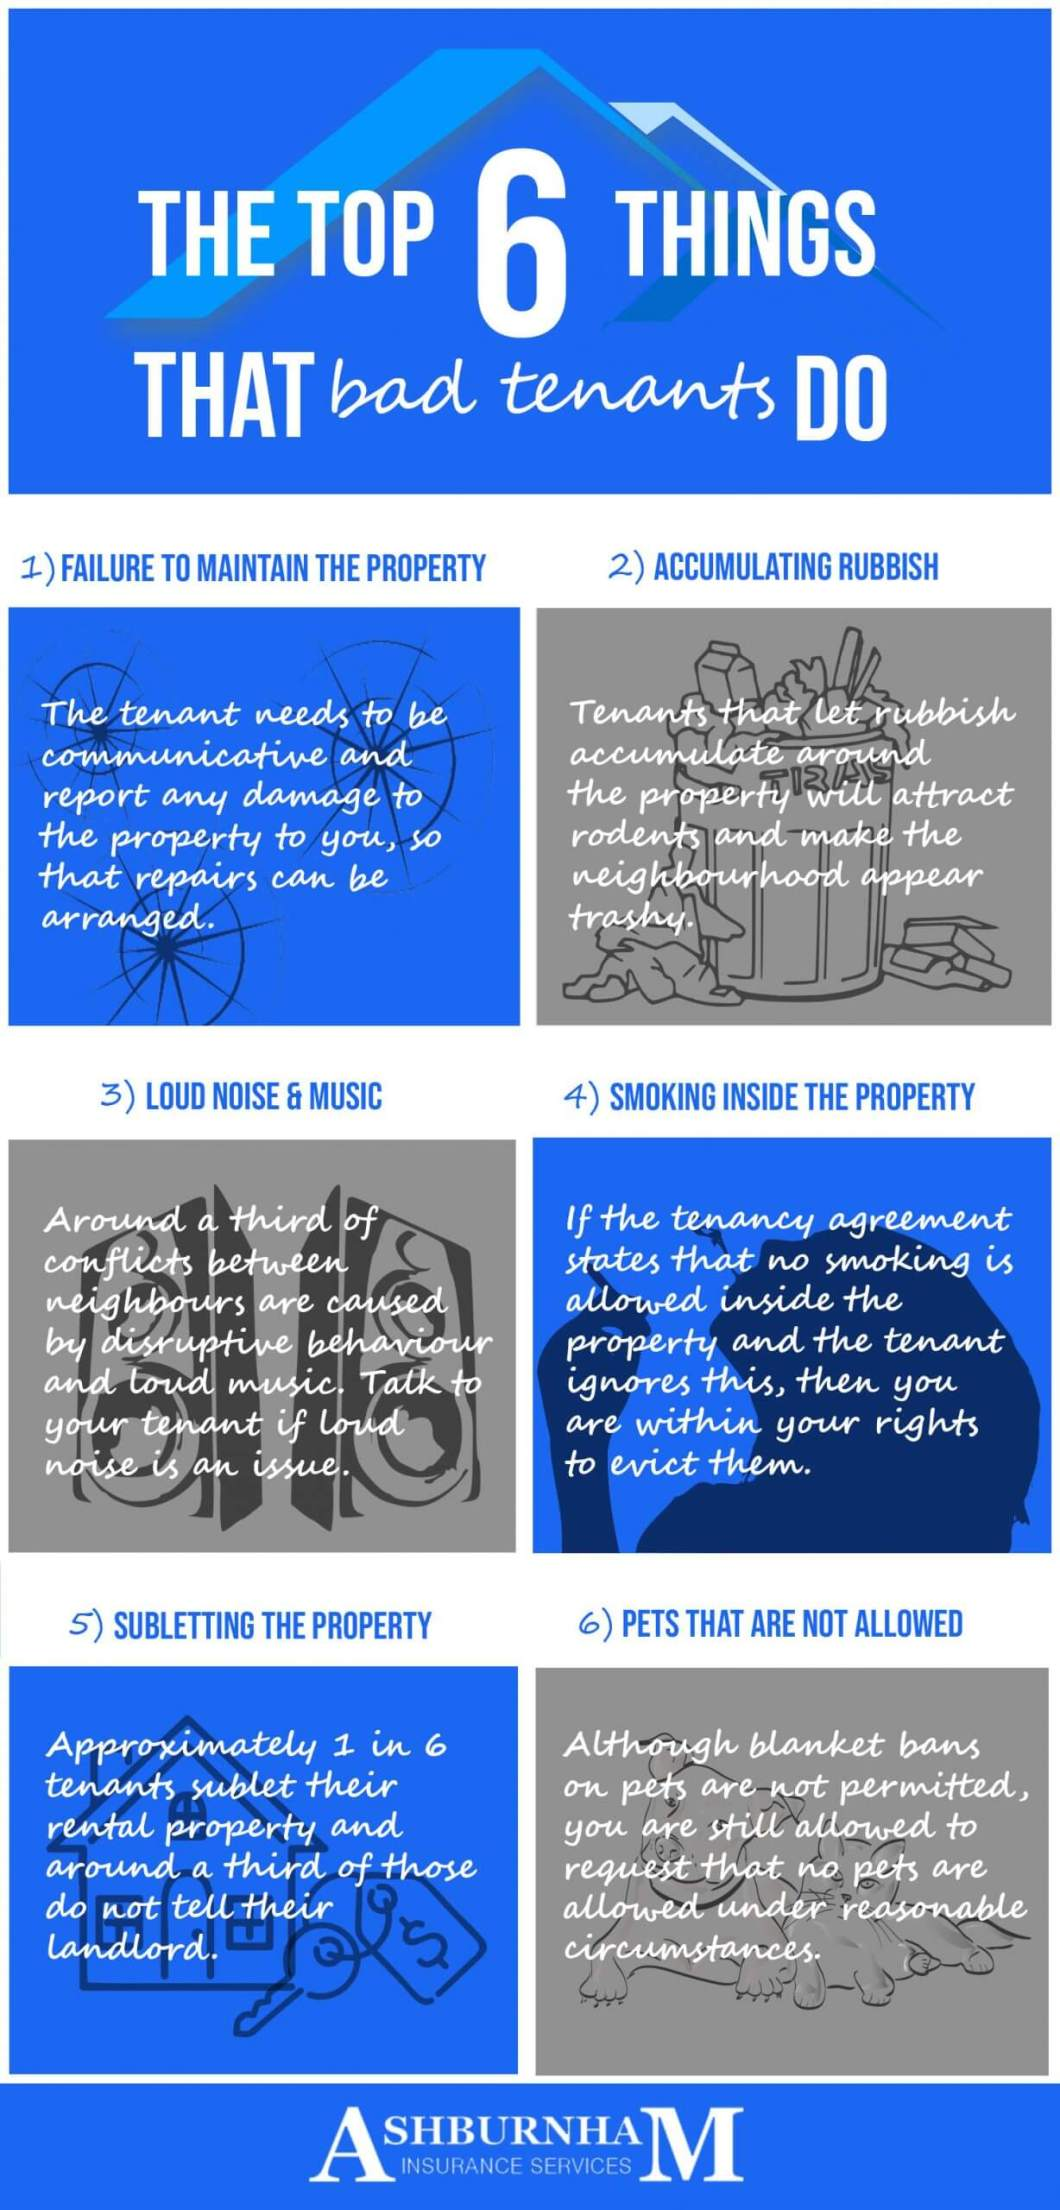 6 Things That Bad Tenants Do Infographic